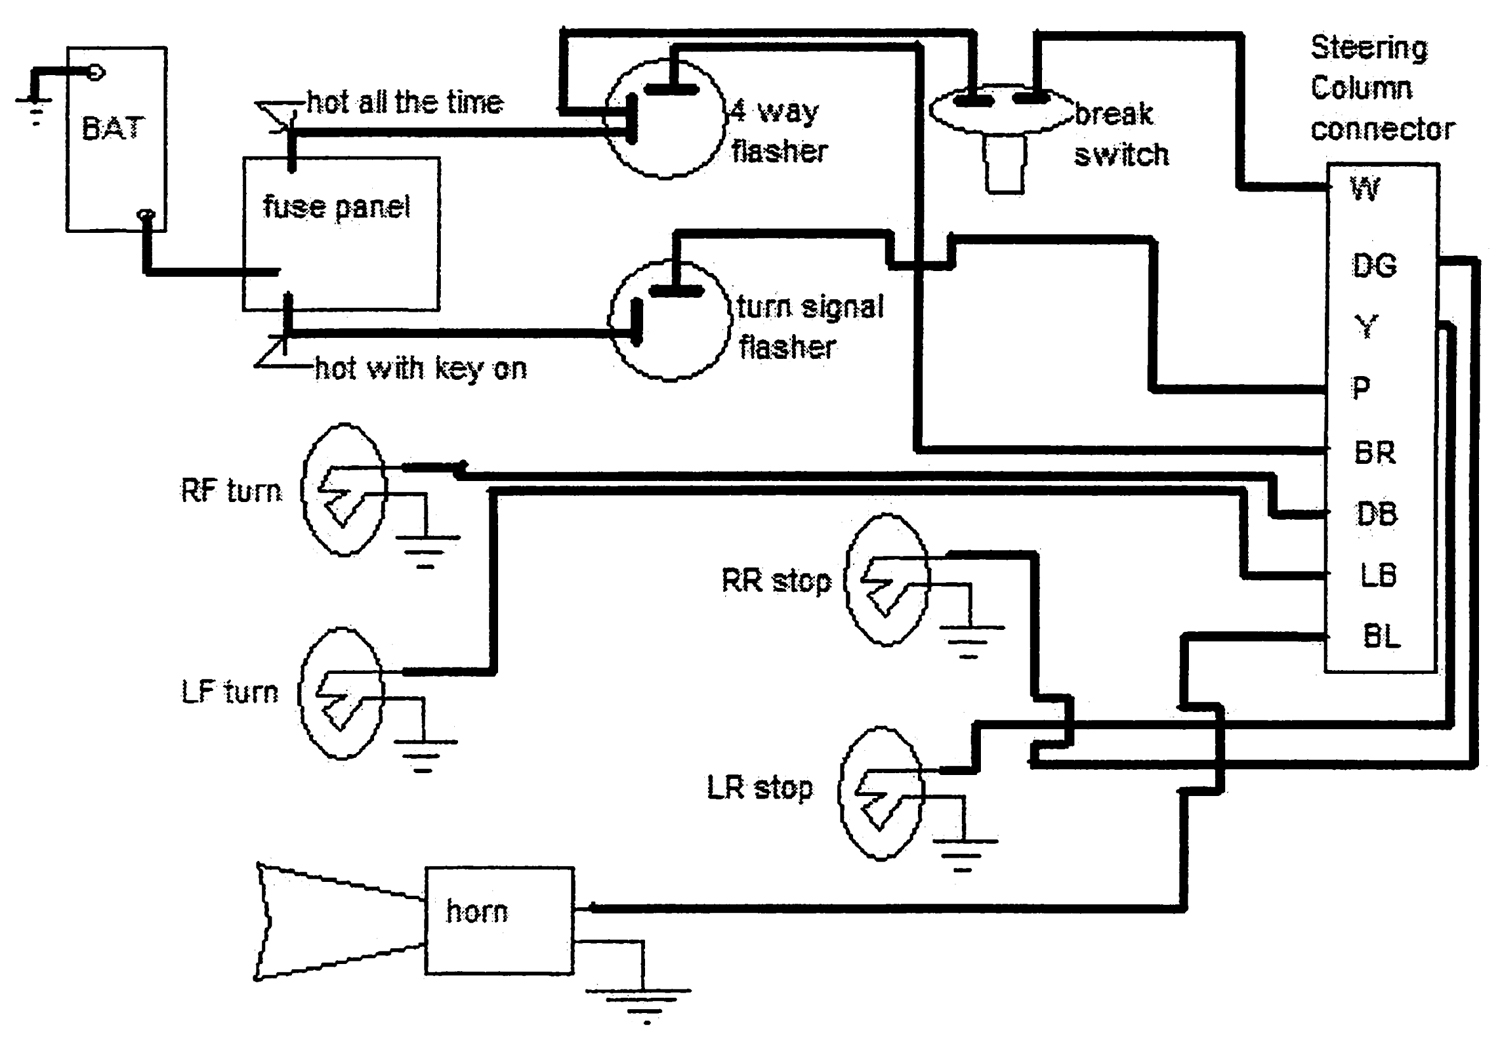 elect sycmatic tech tips ididit steering column wiring diagram at gsmx.co